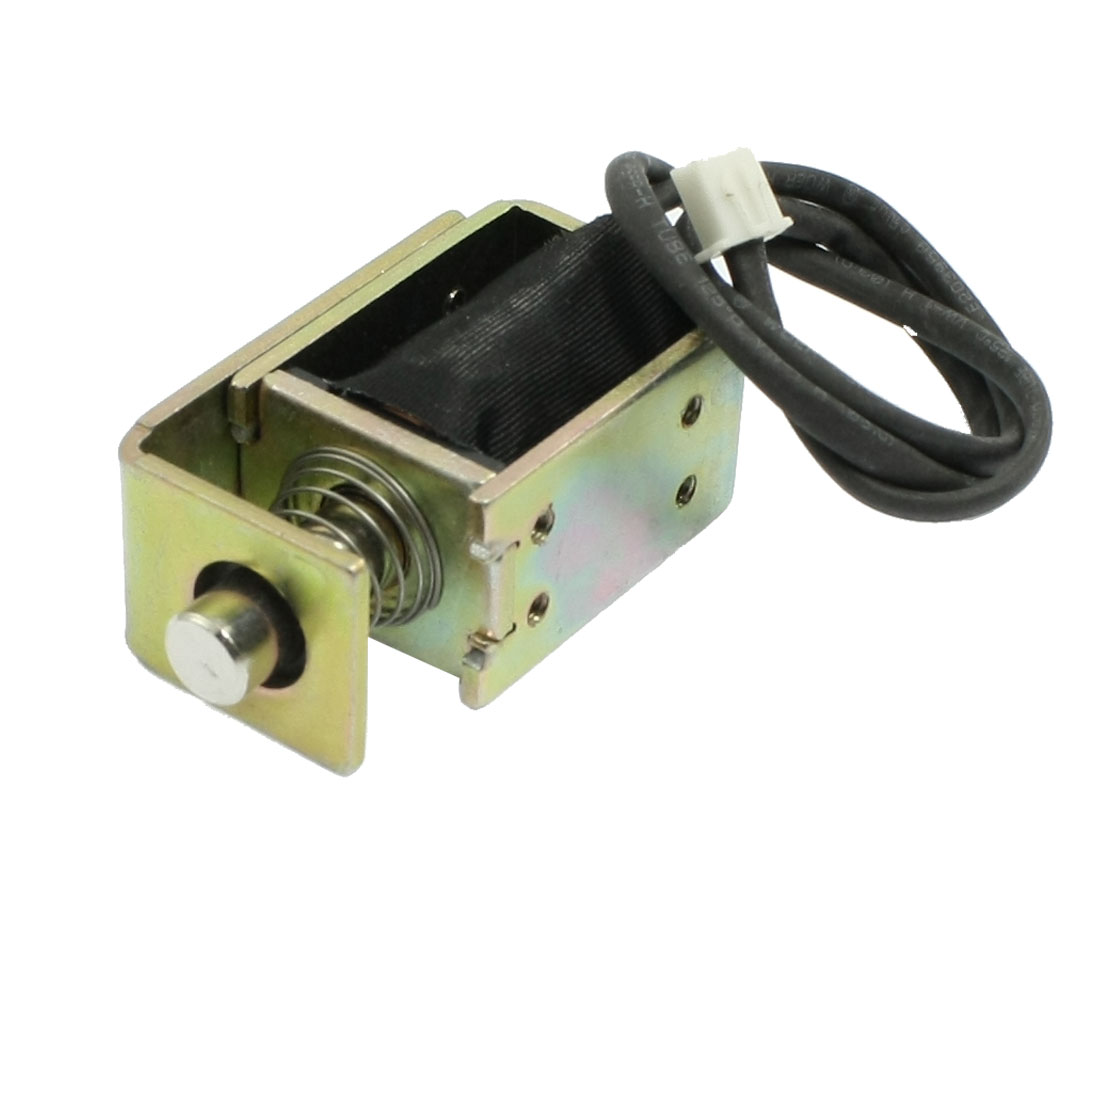 DC 6V 0.15A 7mm Stroke 30gf Force Open Frame Type Solenoid